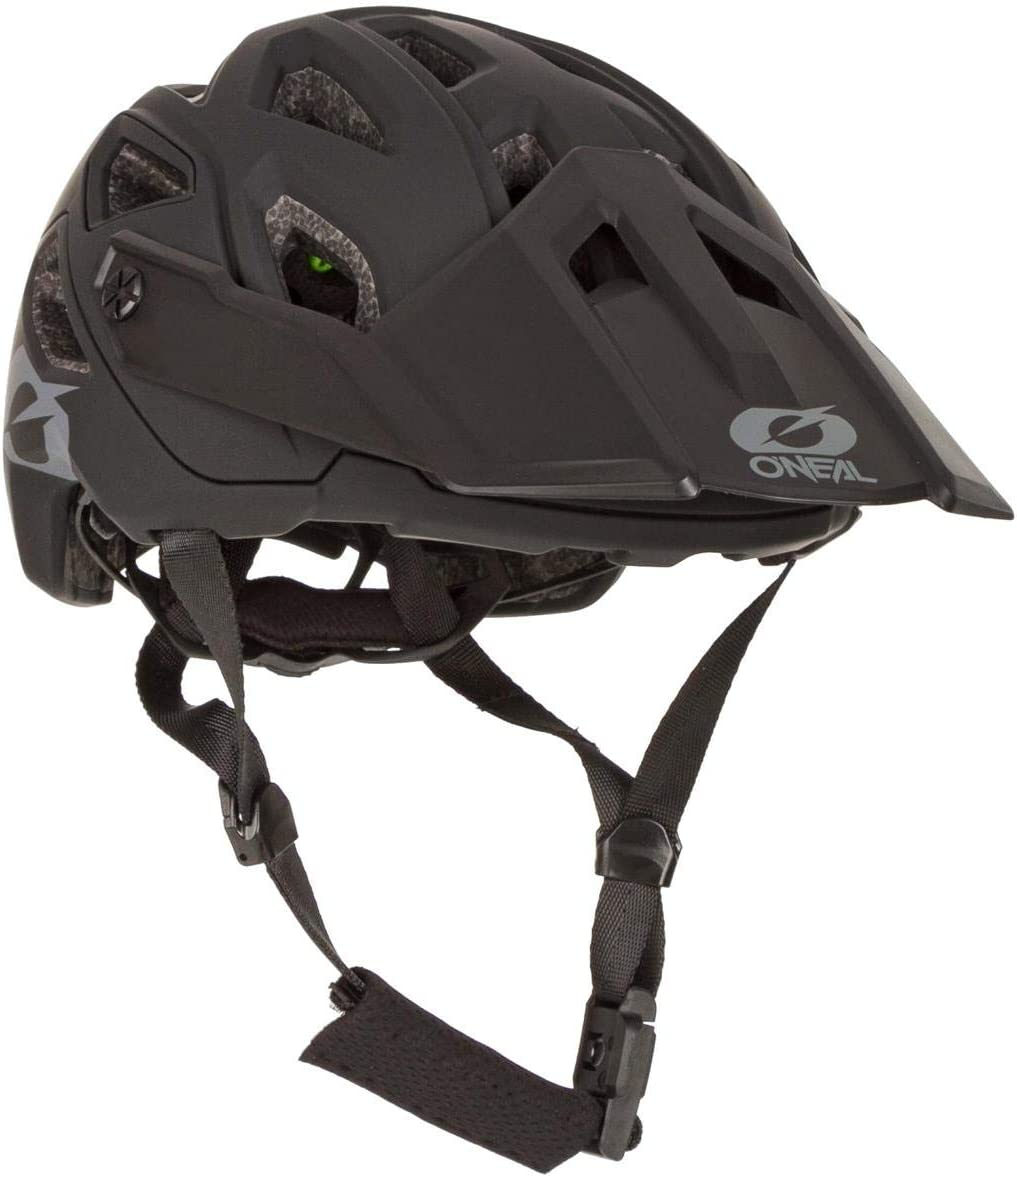 58-61 cm Casque Moto MX-Motocross Oneal Pike 2.0 IPX Casque Solid Black//Gray L//XL Adultes Unisexe